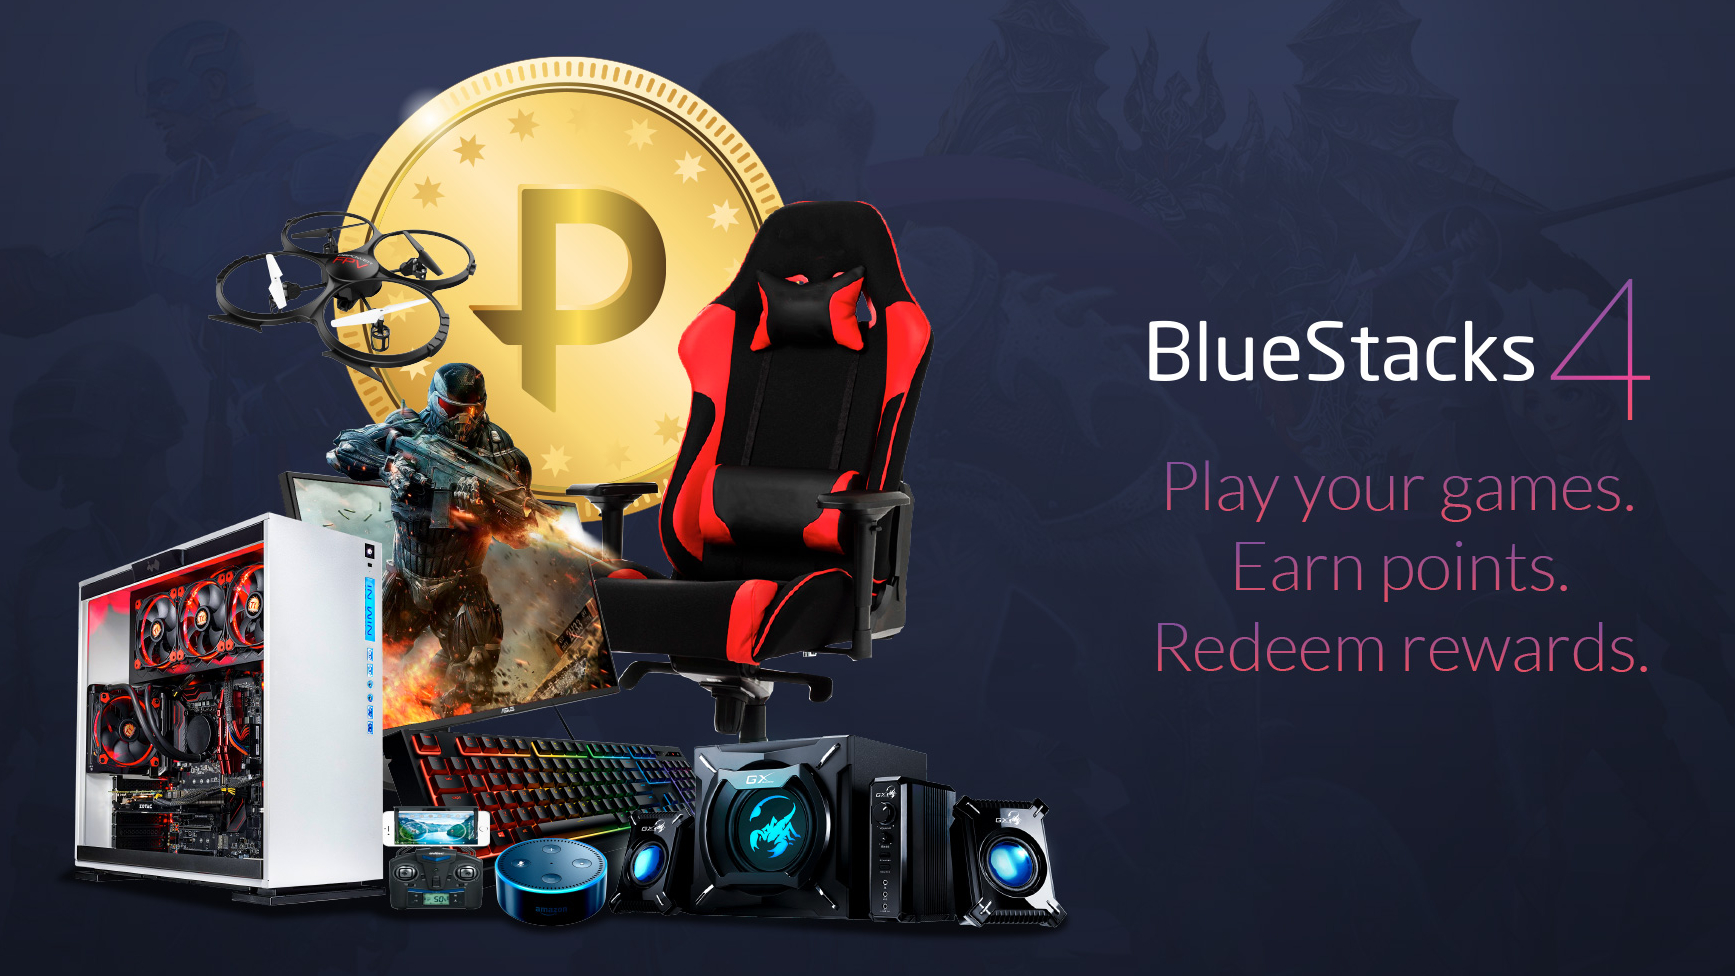 BlueStacks teams up with MSI to offer PCs with Android